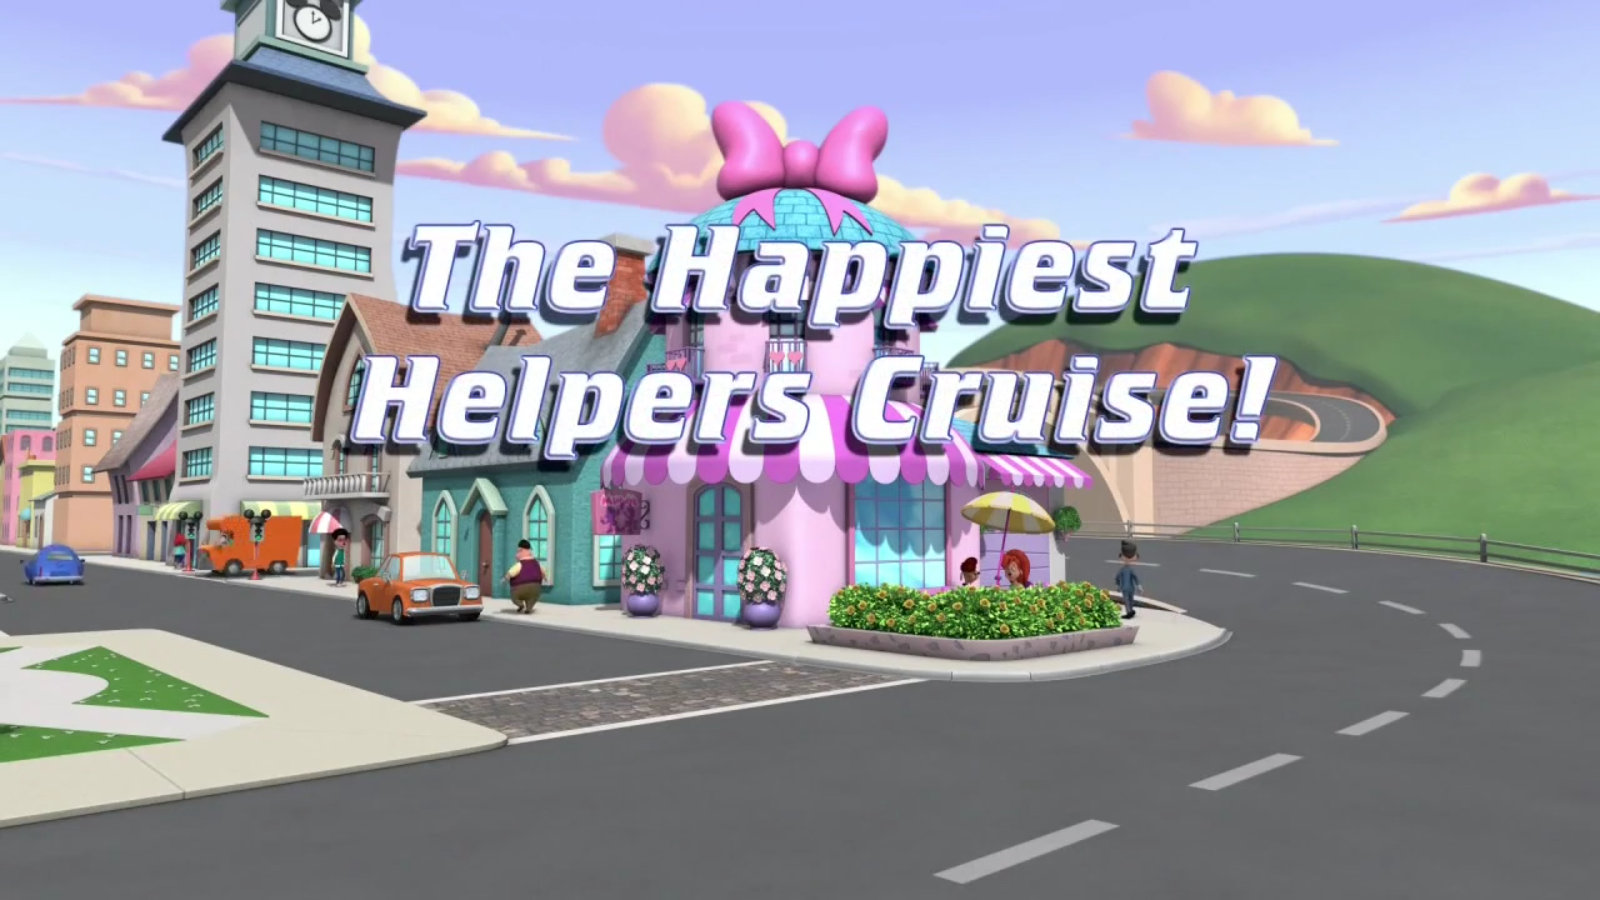 The Happiest Helpers Cruise!